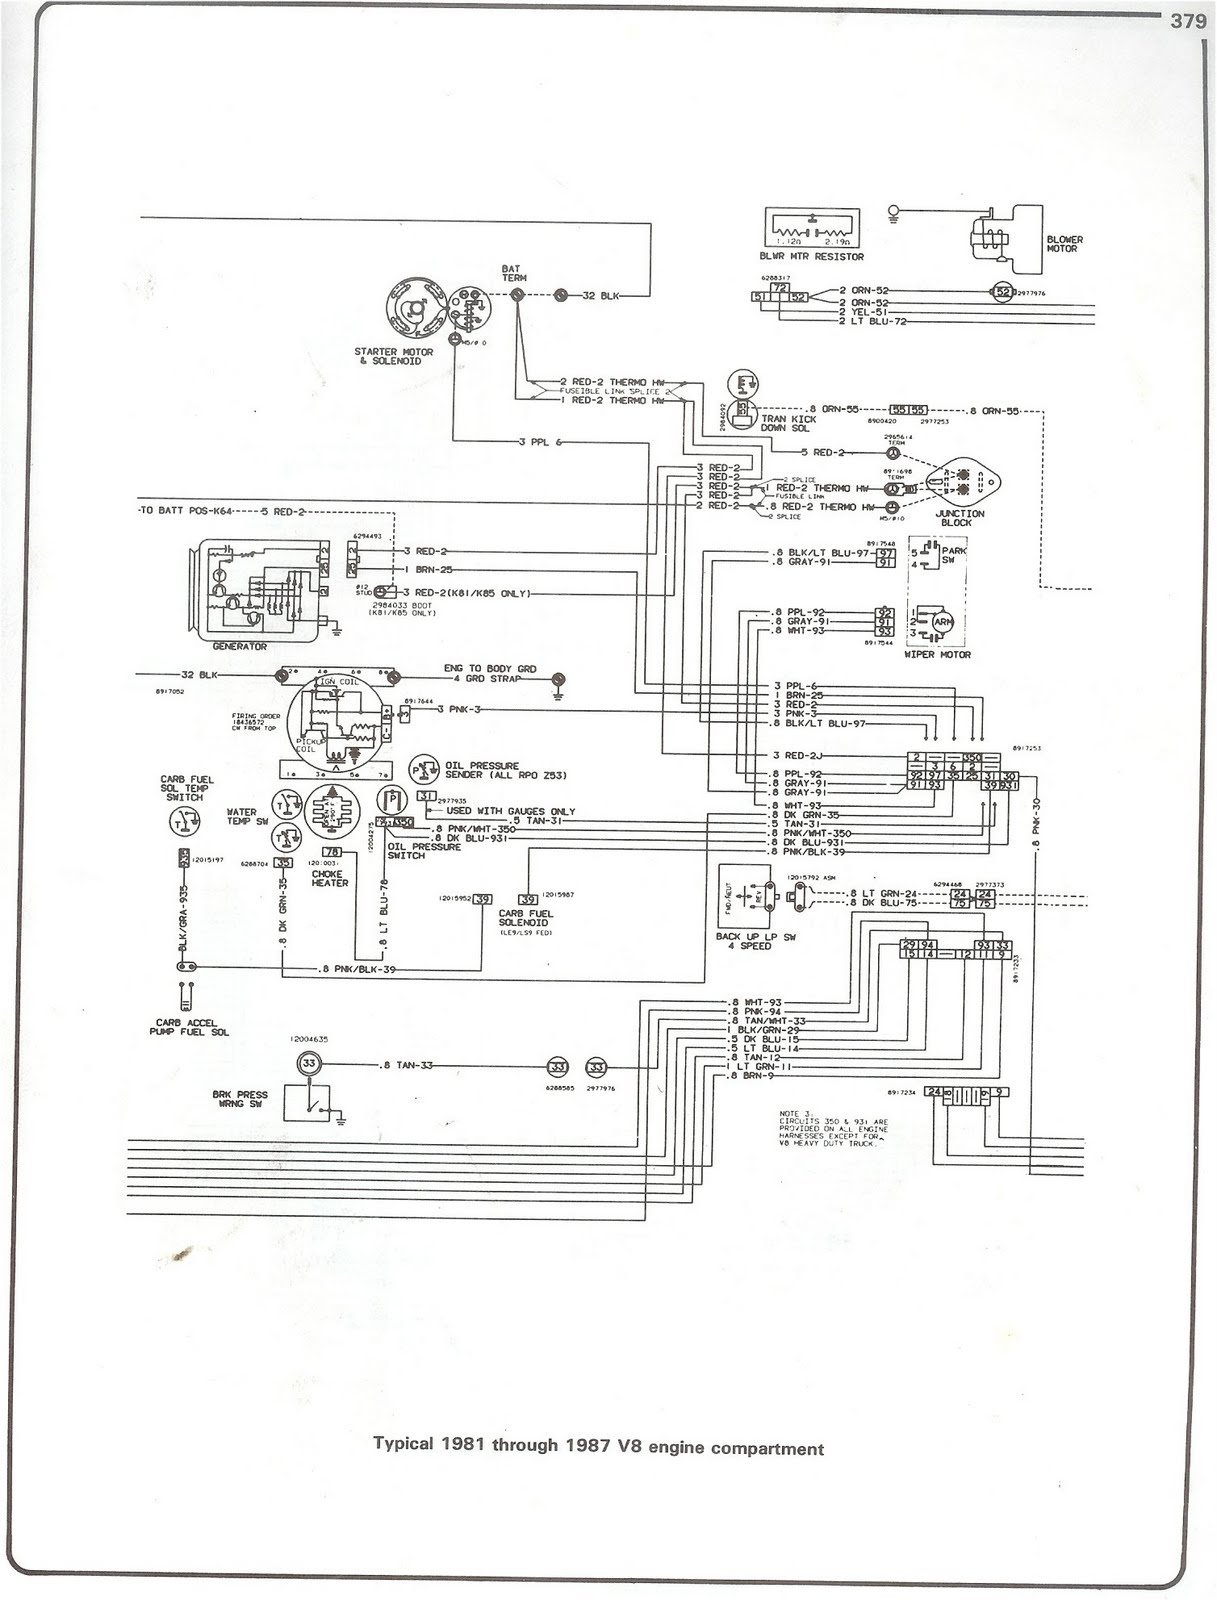 Excellent 81 C10 Wiring Diagram Wiring Diagram Data Wiring Cloud Inklaidewilluminateatxorg